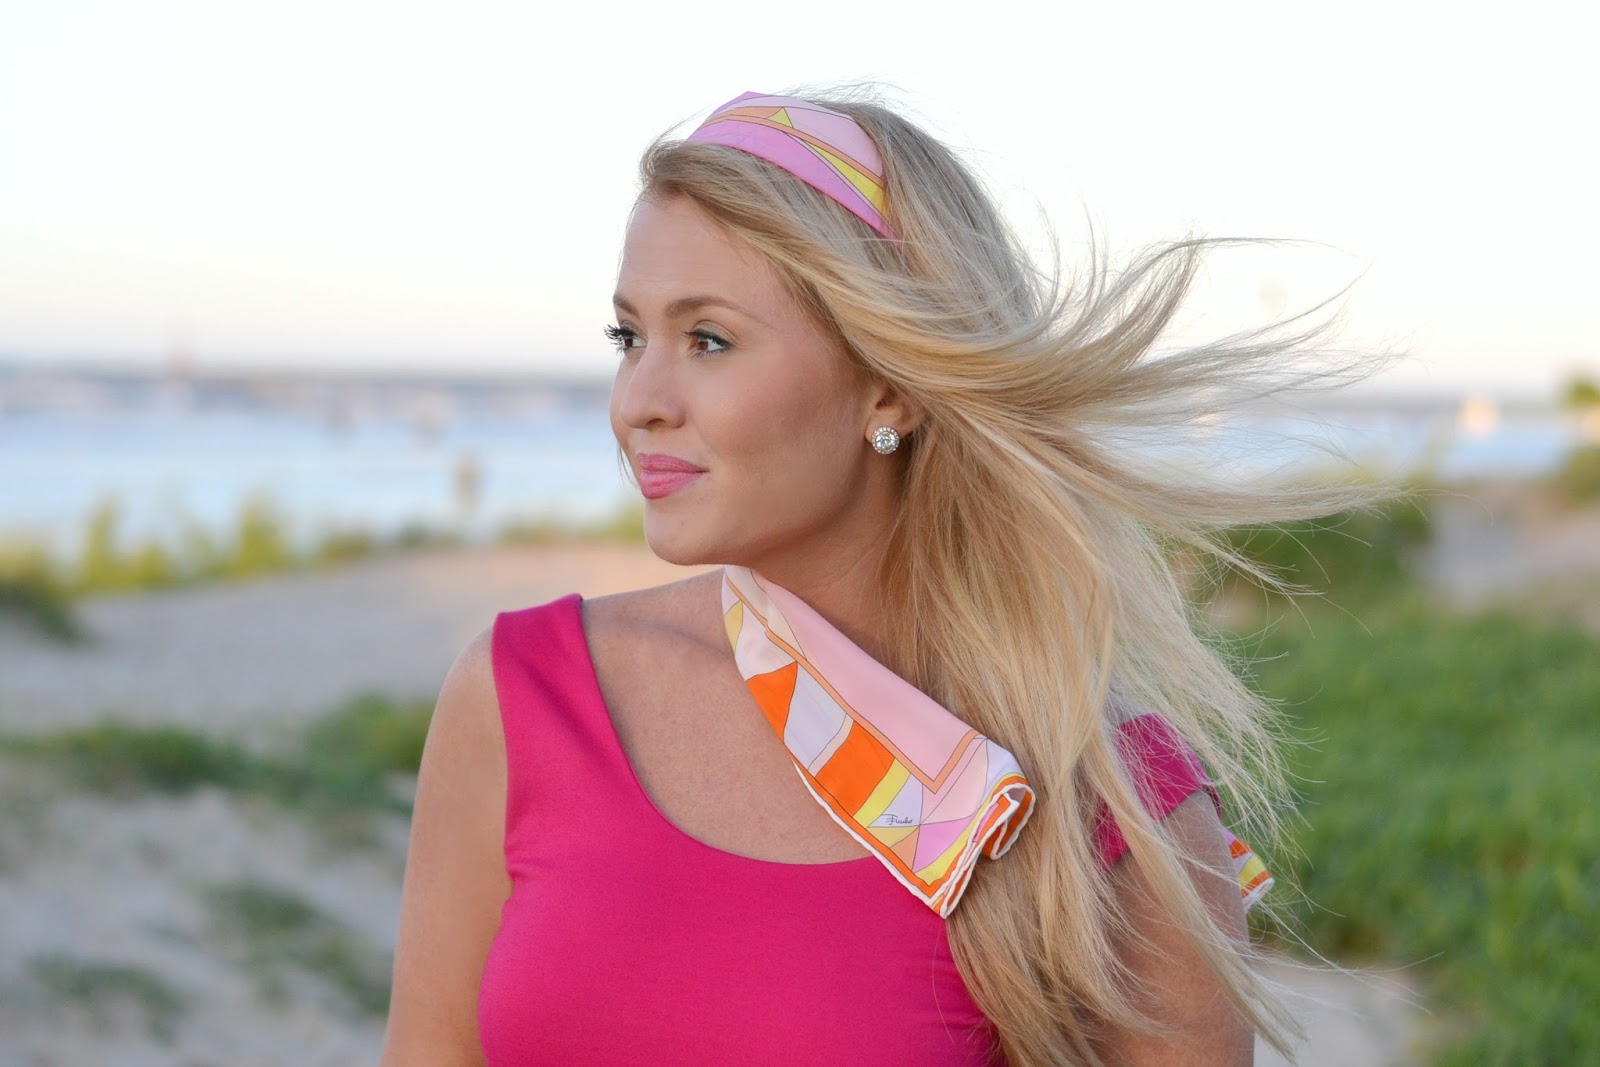 pucci-scarf-in-hair